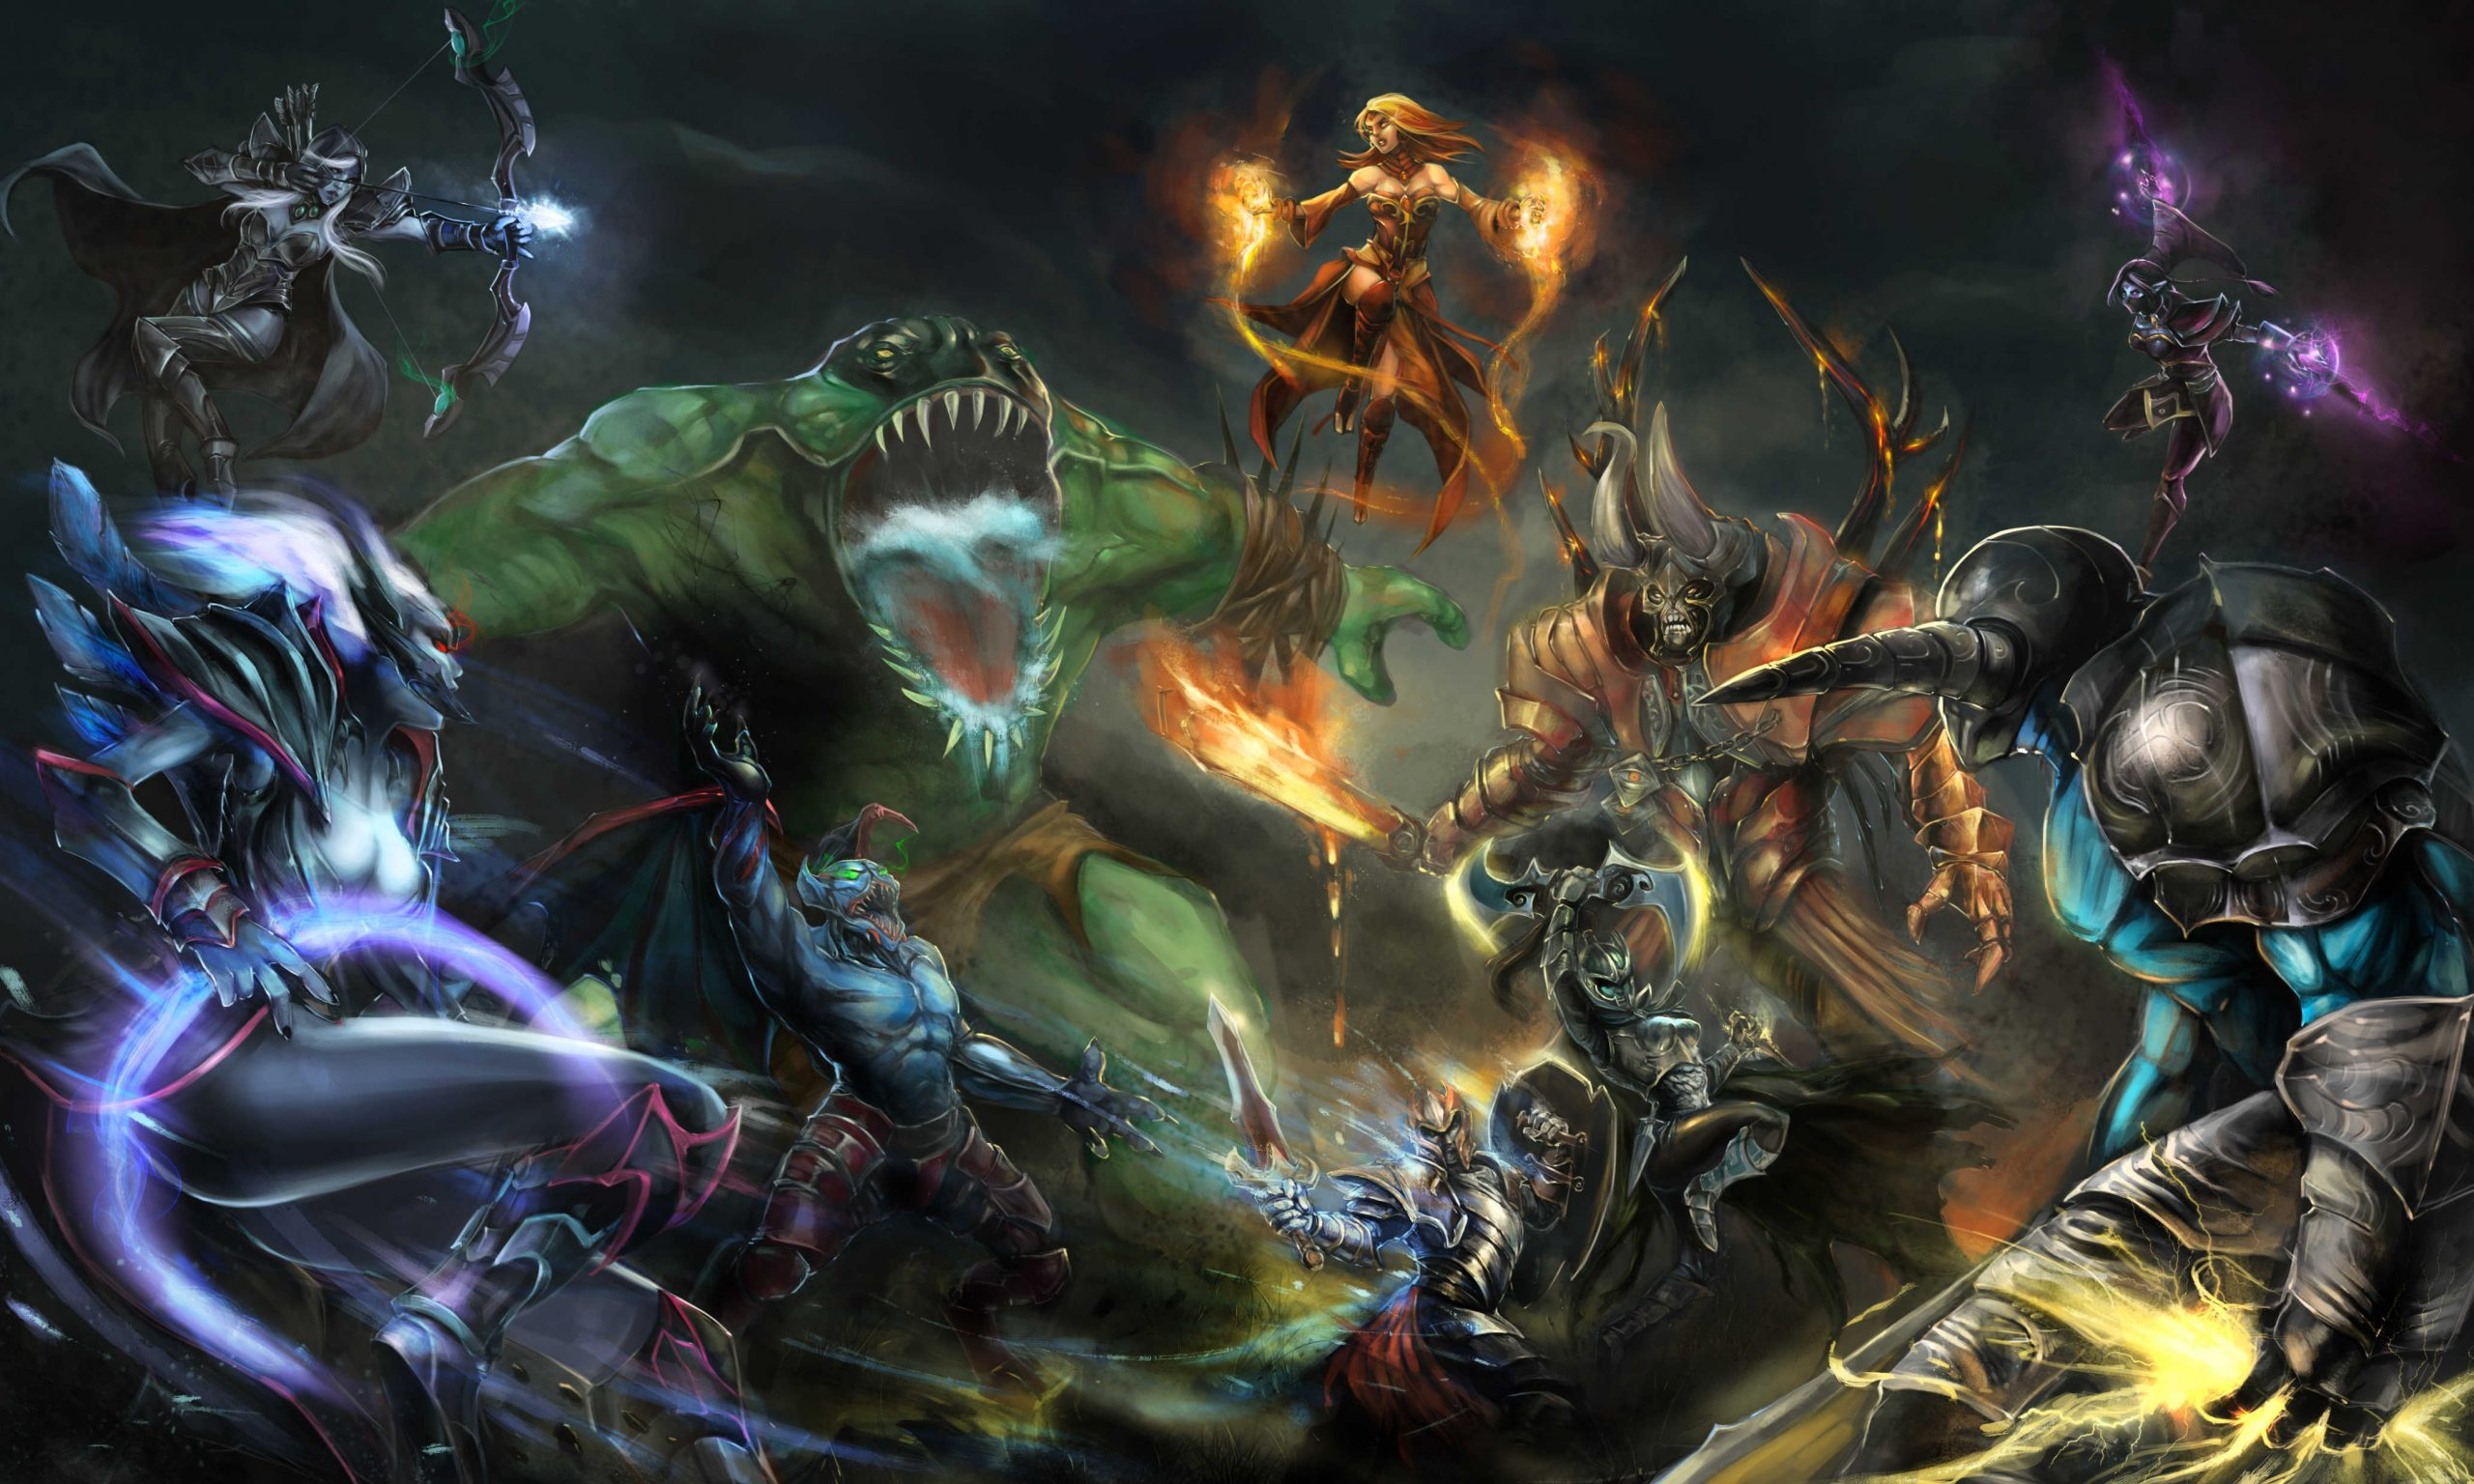 Dota 2 Hd And Background Image Wallpaper